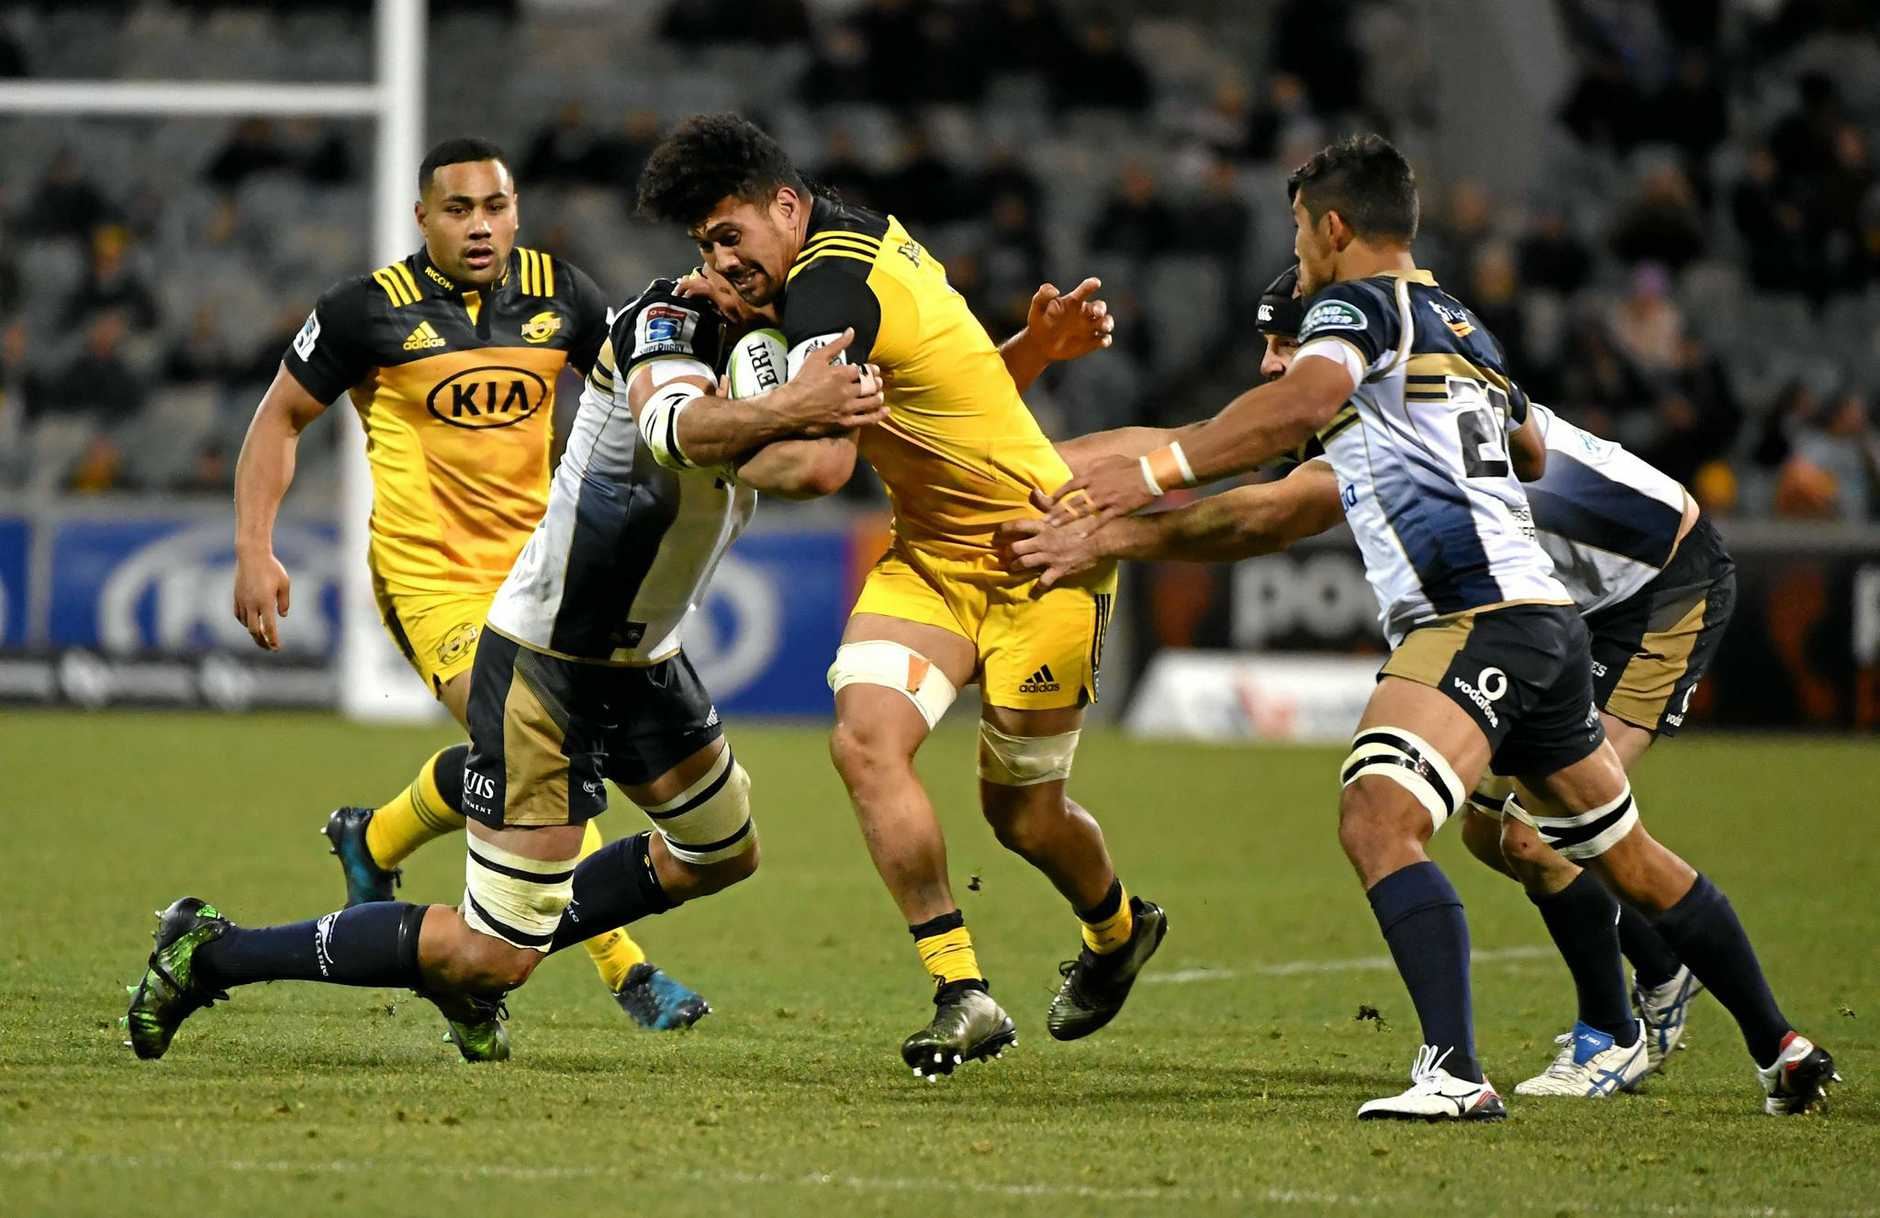 Ardie Savea of the Hurricanes (centre) is tackled during the quarterfinal Super Rugby match between the Brumbies and the Wellington Hurricanes at GIO Stadium in Canberra, Friday, July 21, 2017. (AAP Image/Mick Tsikas) NO ARCHIVING, EDITORIAL USE ONLY